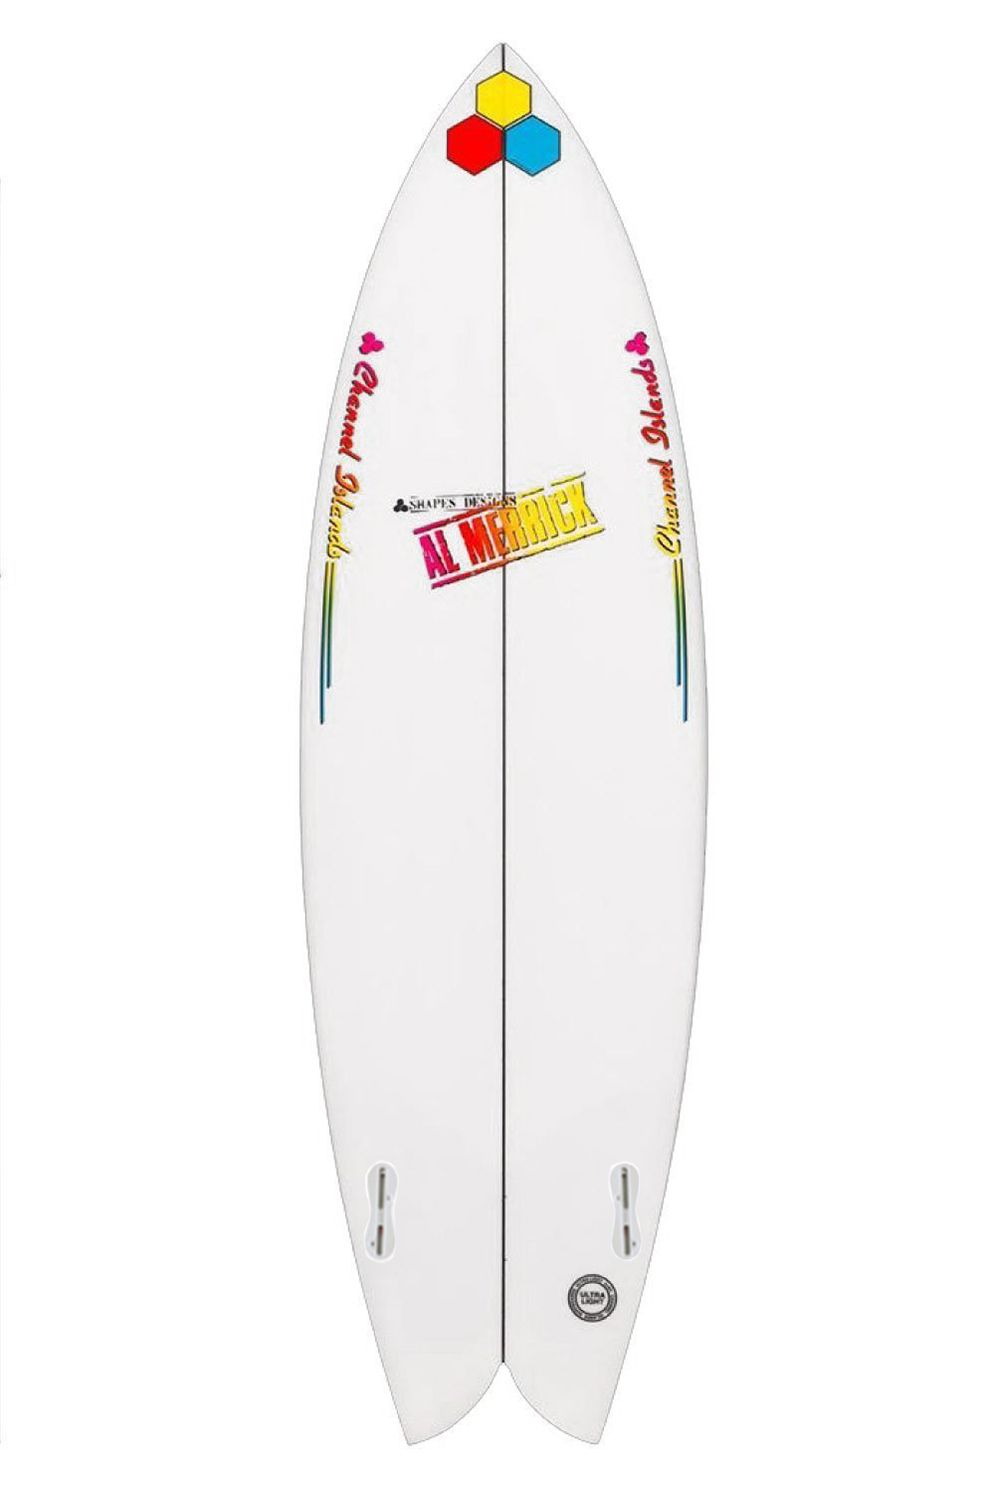 Prancha Surf Al Merrick FISHBEARD 5'11 Fish Tail - White FCS II Twin Tab 5ft11